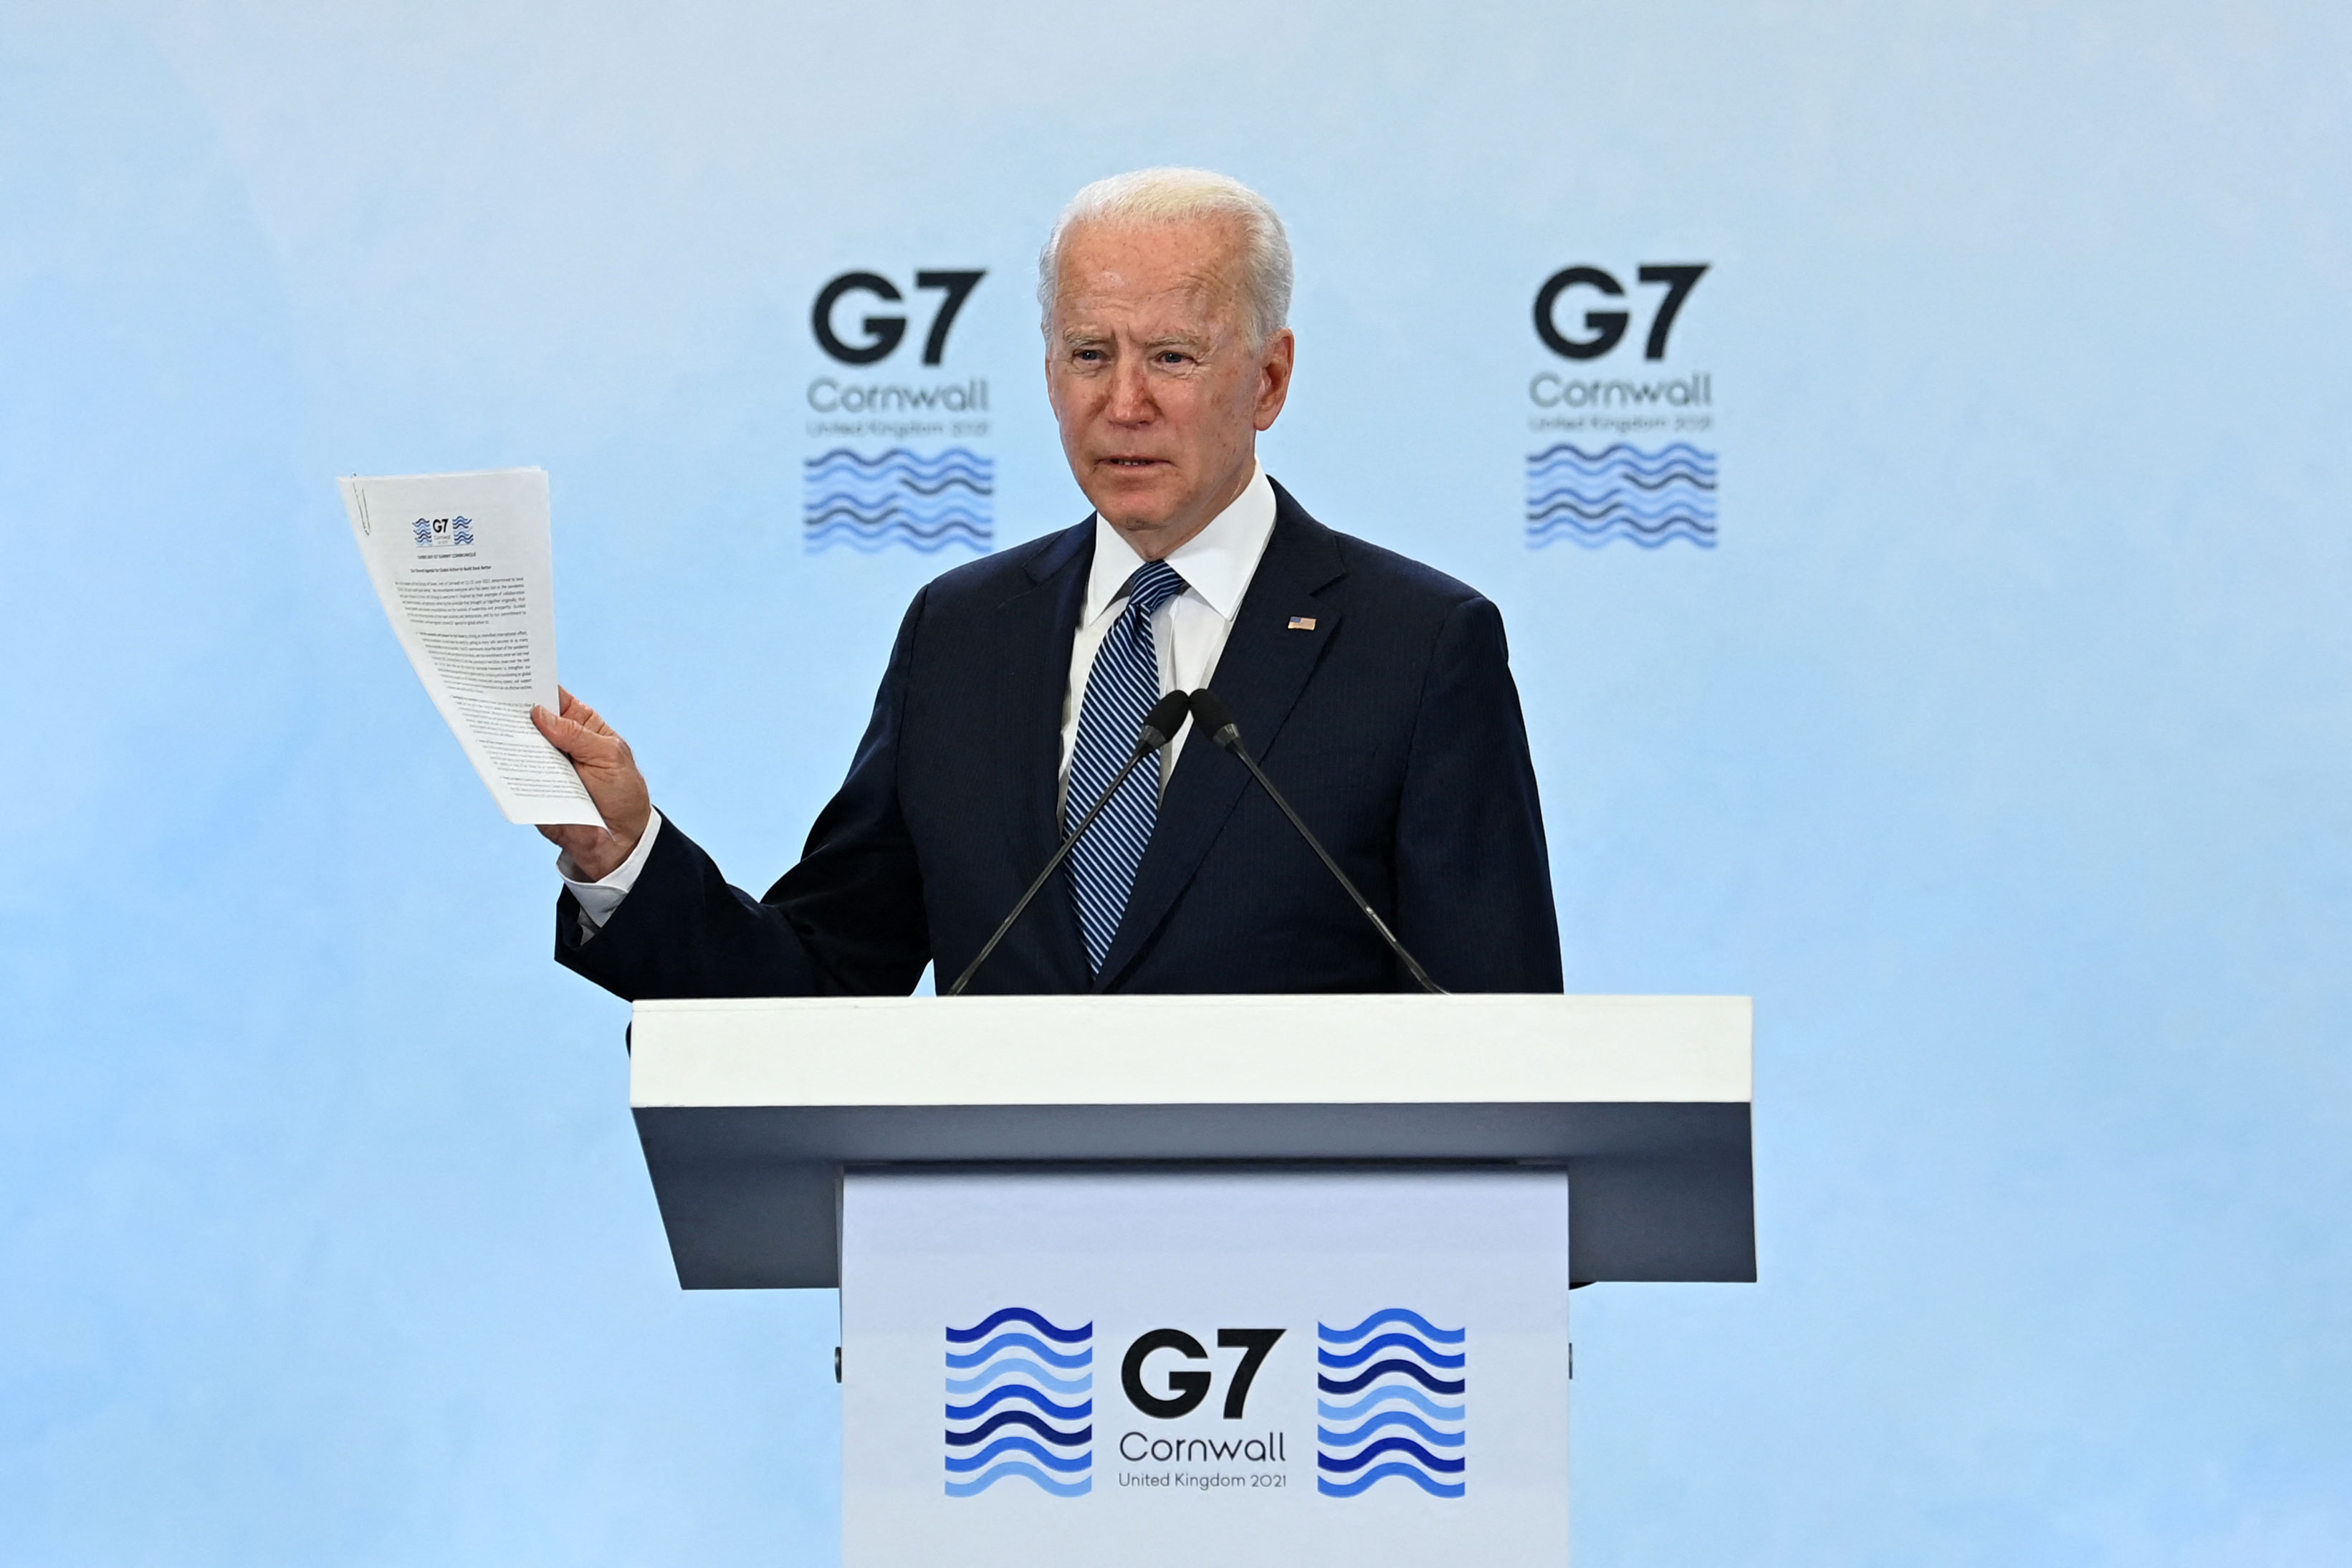 US President Joe Biden speaks at a press conference at Cornwall Airport Newquay in England on June 13.